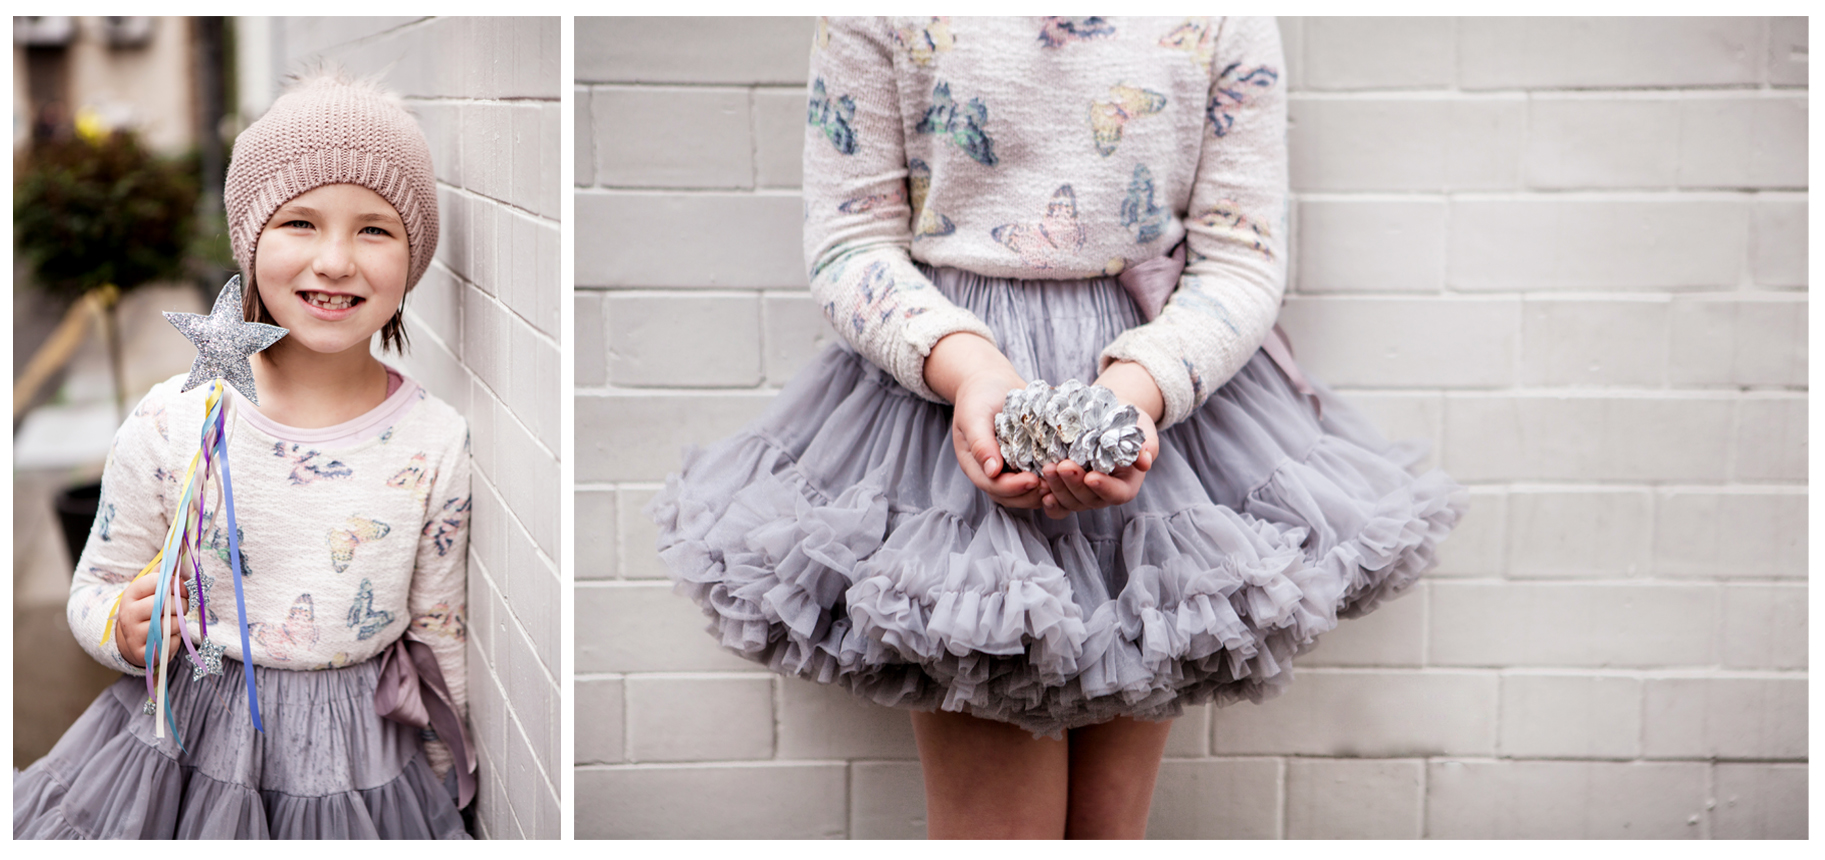 Clare J Sheridan Photography - Girl in lilac tutu and woollen hat with wand and pine cone